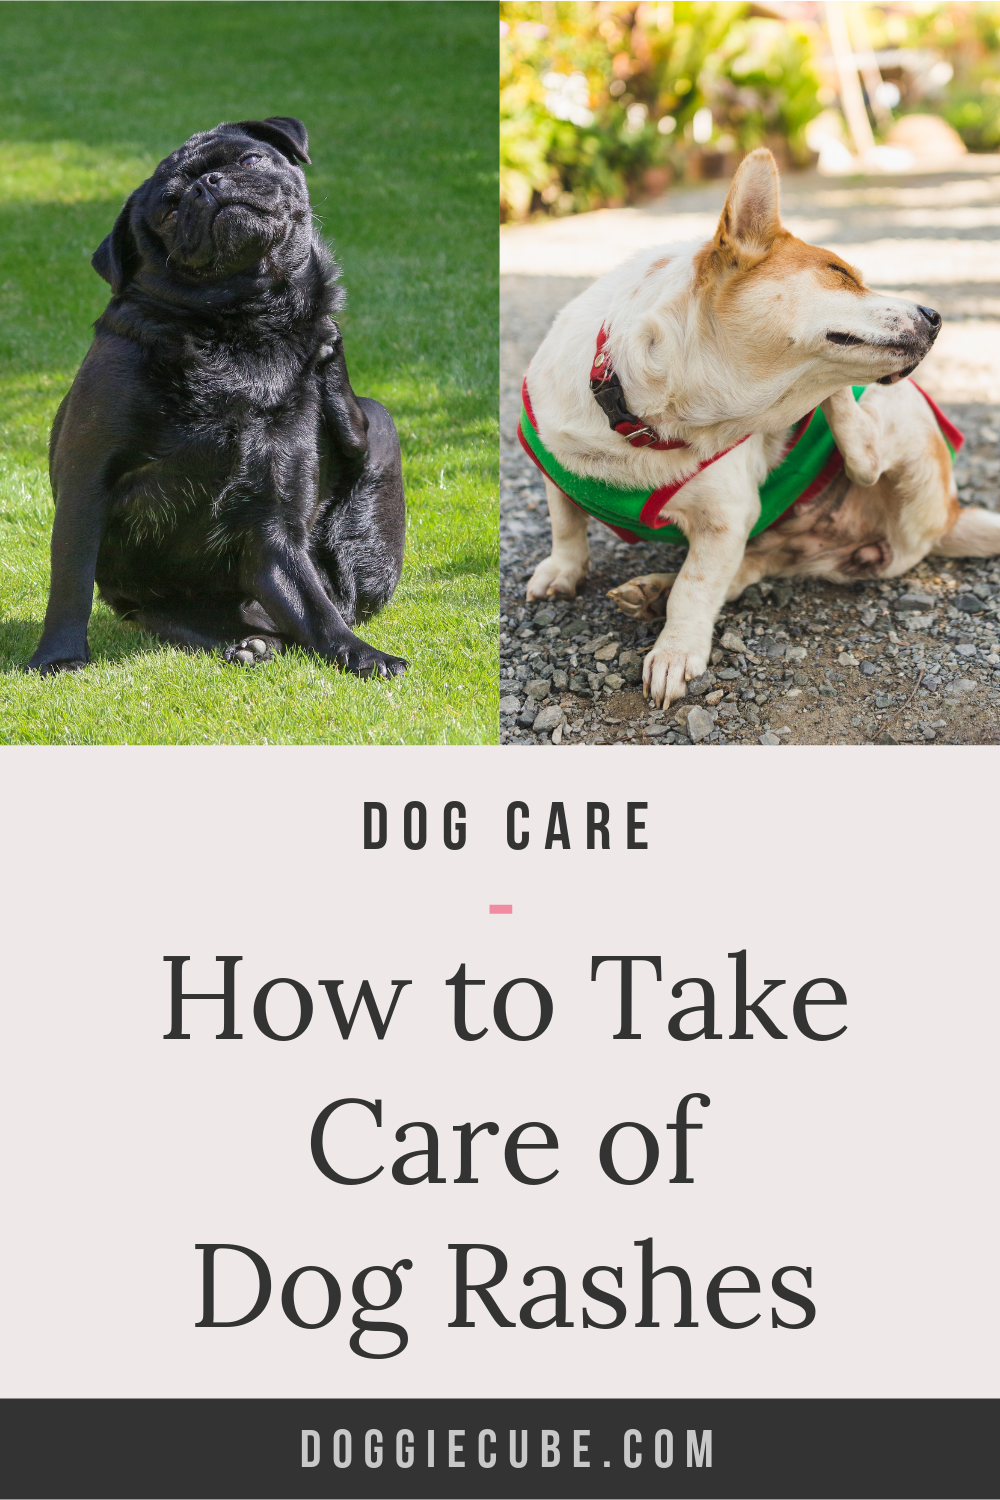 How To Take Care Of Dog Rashes Dog rash, Dogs, Dog care tips